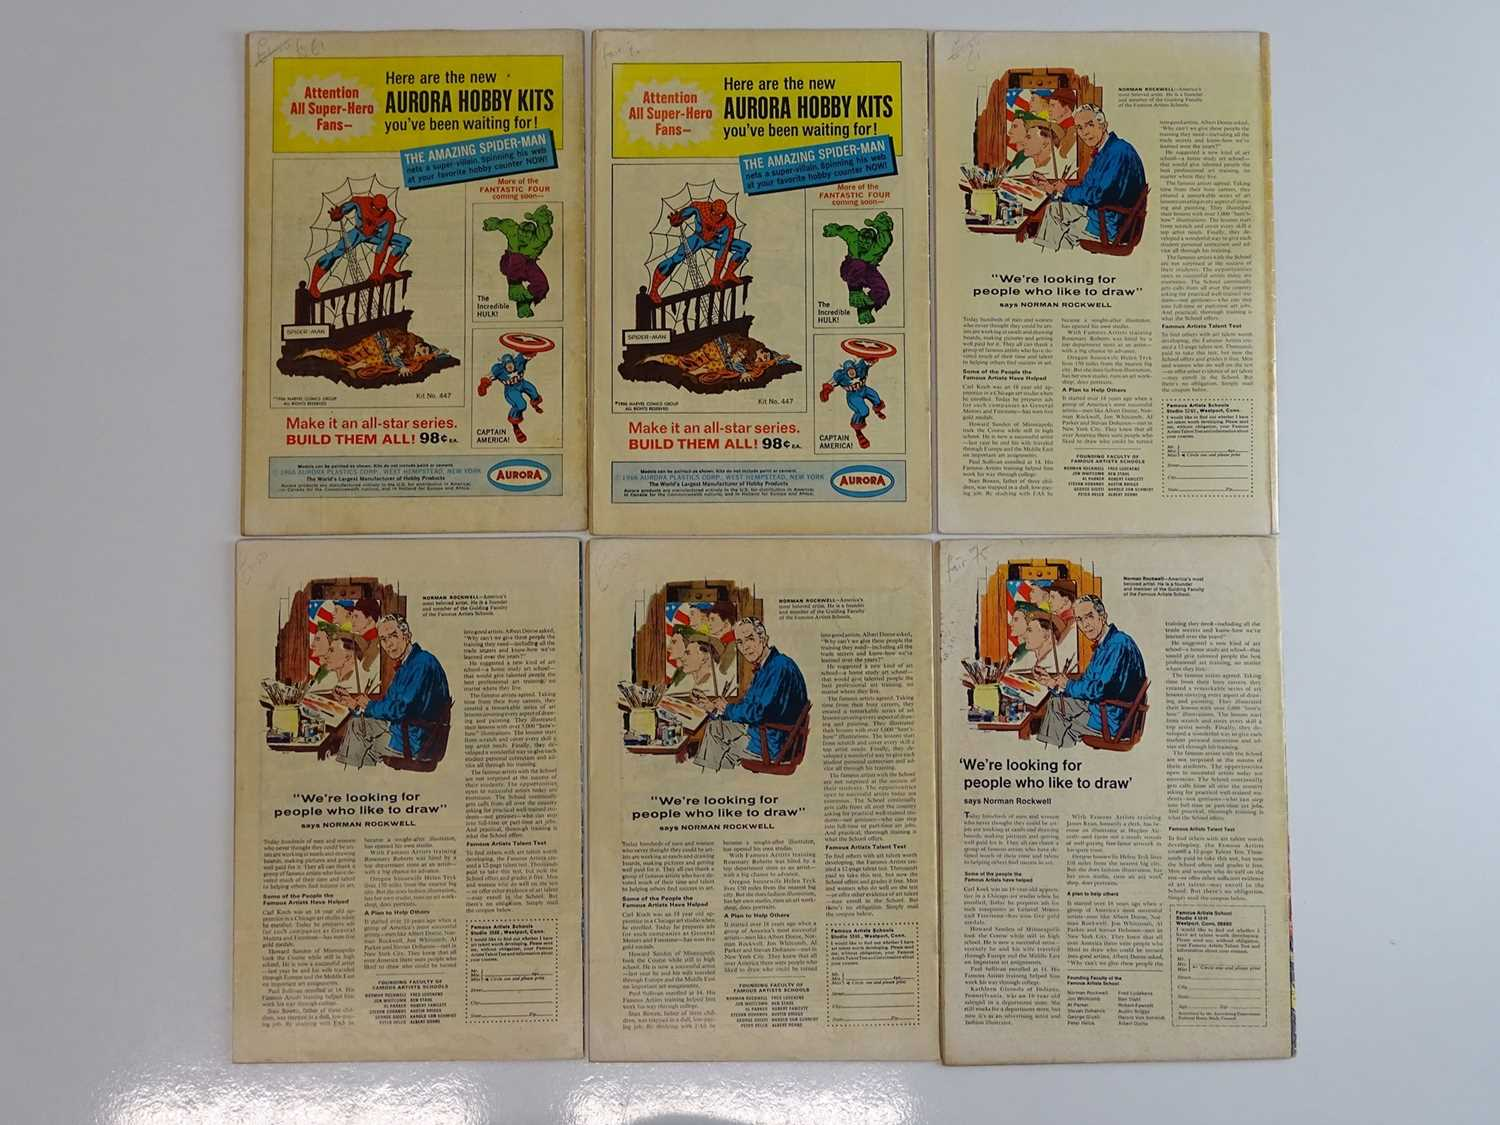 THOR #135, 137, 142, 145, 146, 159 - (6 in Lot) - (1966/68 - MARVEL - UK Price Variant) - Includes - Image 2 of 2